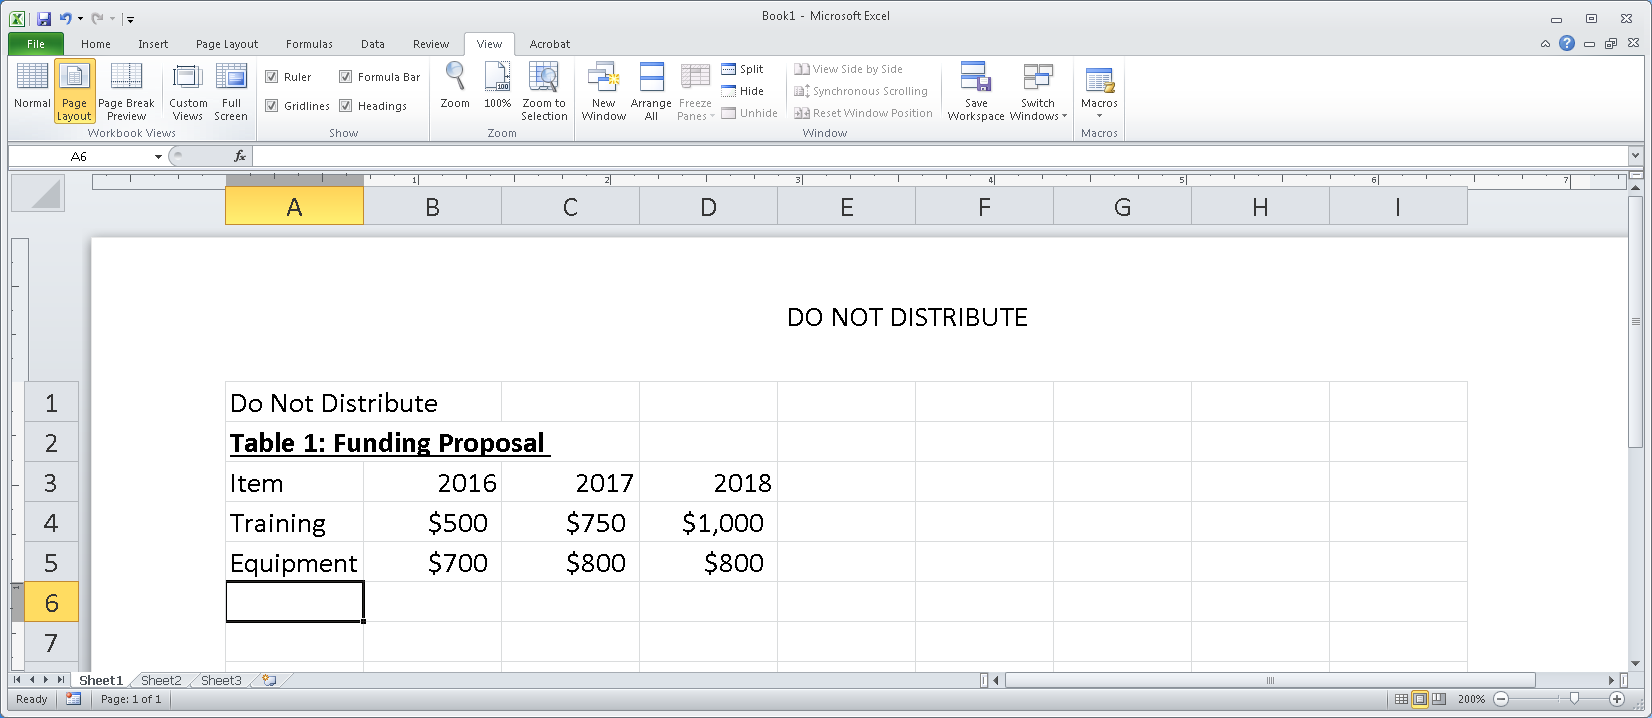 Excel 2013 Accessibility Checklist